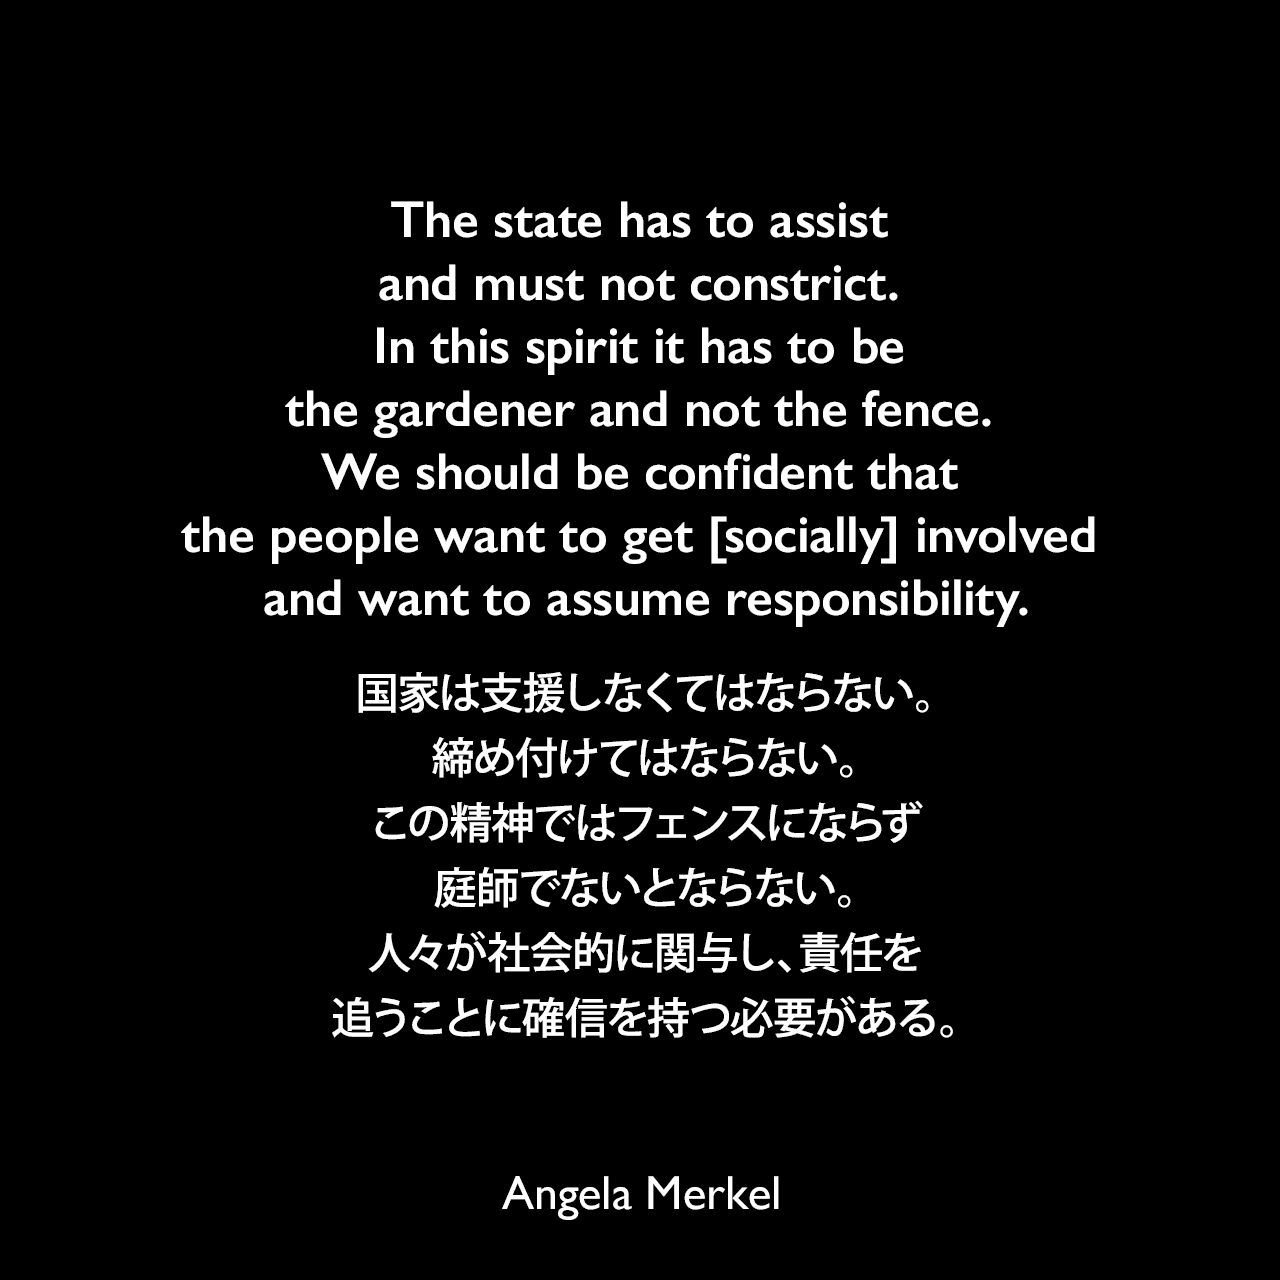 The state has to assist and must not constrict. In this spirit it has to be the gardener and not the fence. We should be confident that the people want to get [socially] involved and want to assume responsibility.国家は支援しなくてはならない。締め付けてはならない。この精神ではフェンスにならず、庭師でないとならない。人々が社会的に関与し、責任を追うことに確信を持つ必要がある。- 2006年5月、南ドイツ新聞でのインタビューよりAngela Merkel